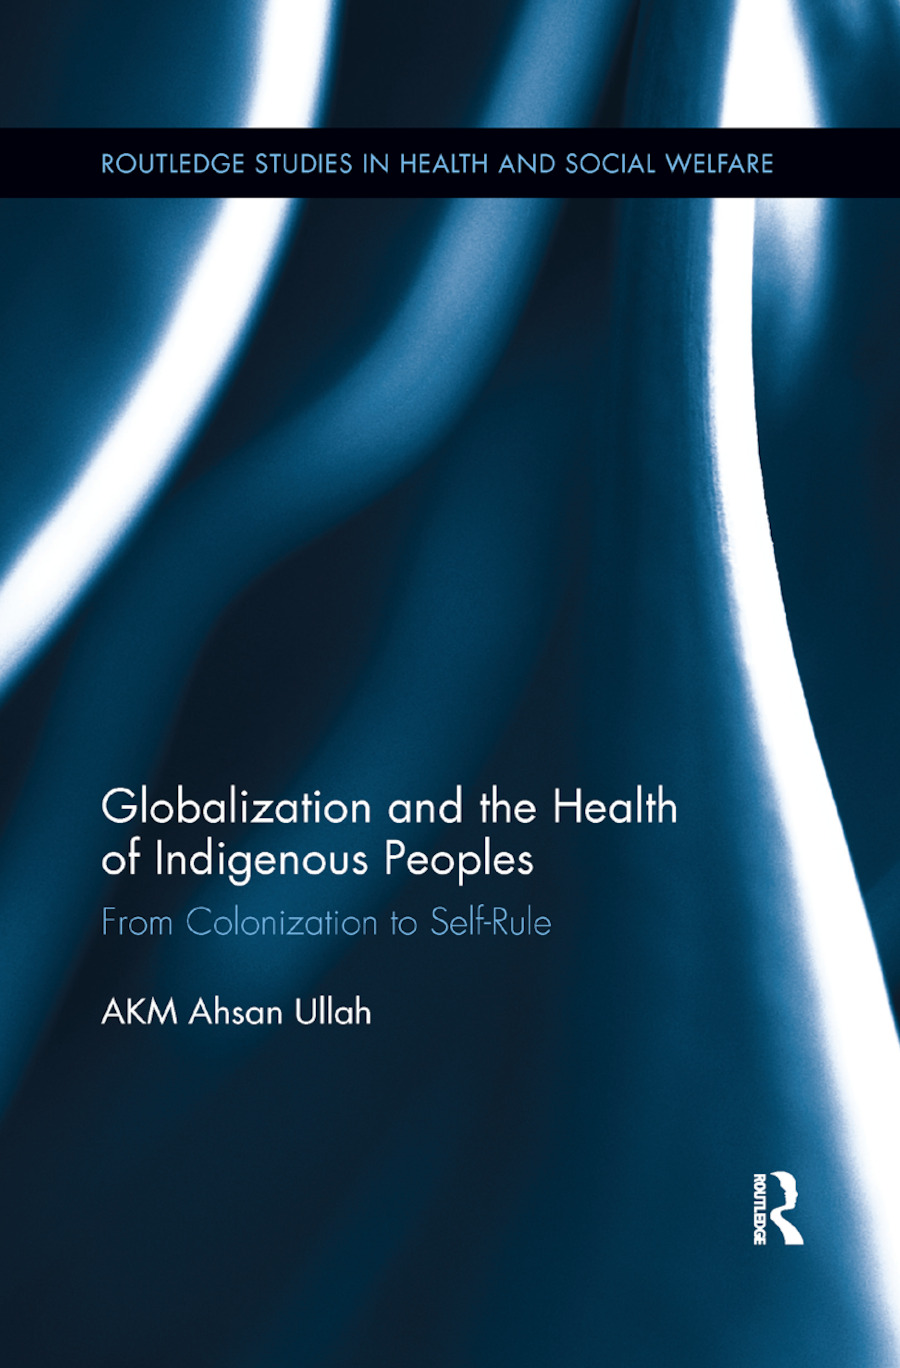 Globalization and the Health of Indigenous Peoples